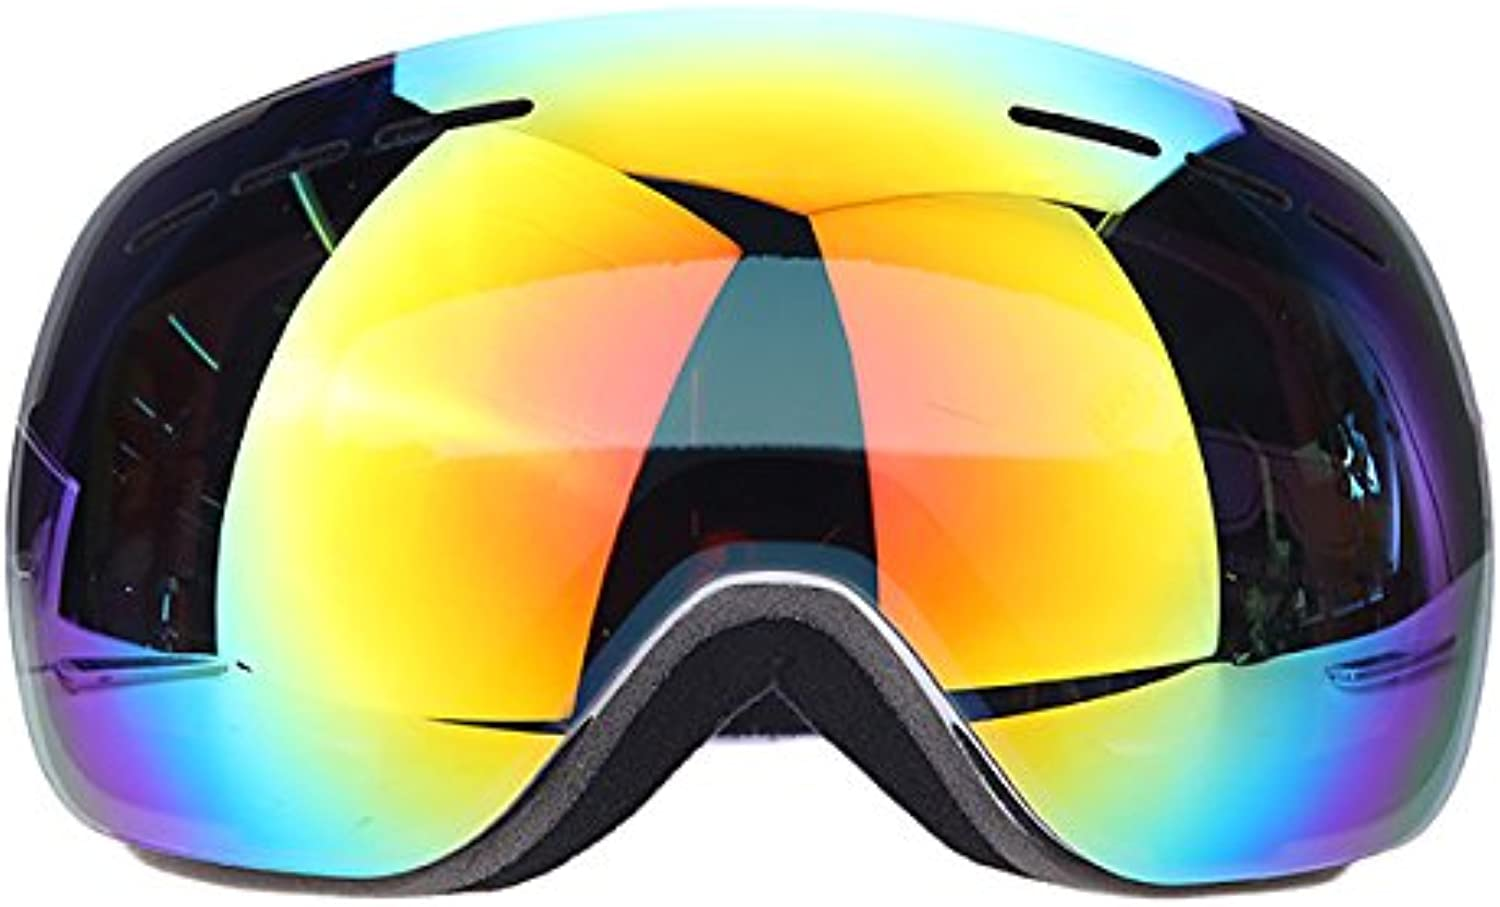 ShopSquare64 KALOAD H003 Ski Goggles Double Lens Anti Fog Spherical Men Women Unisex Multicolor Snow Glasses